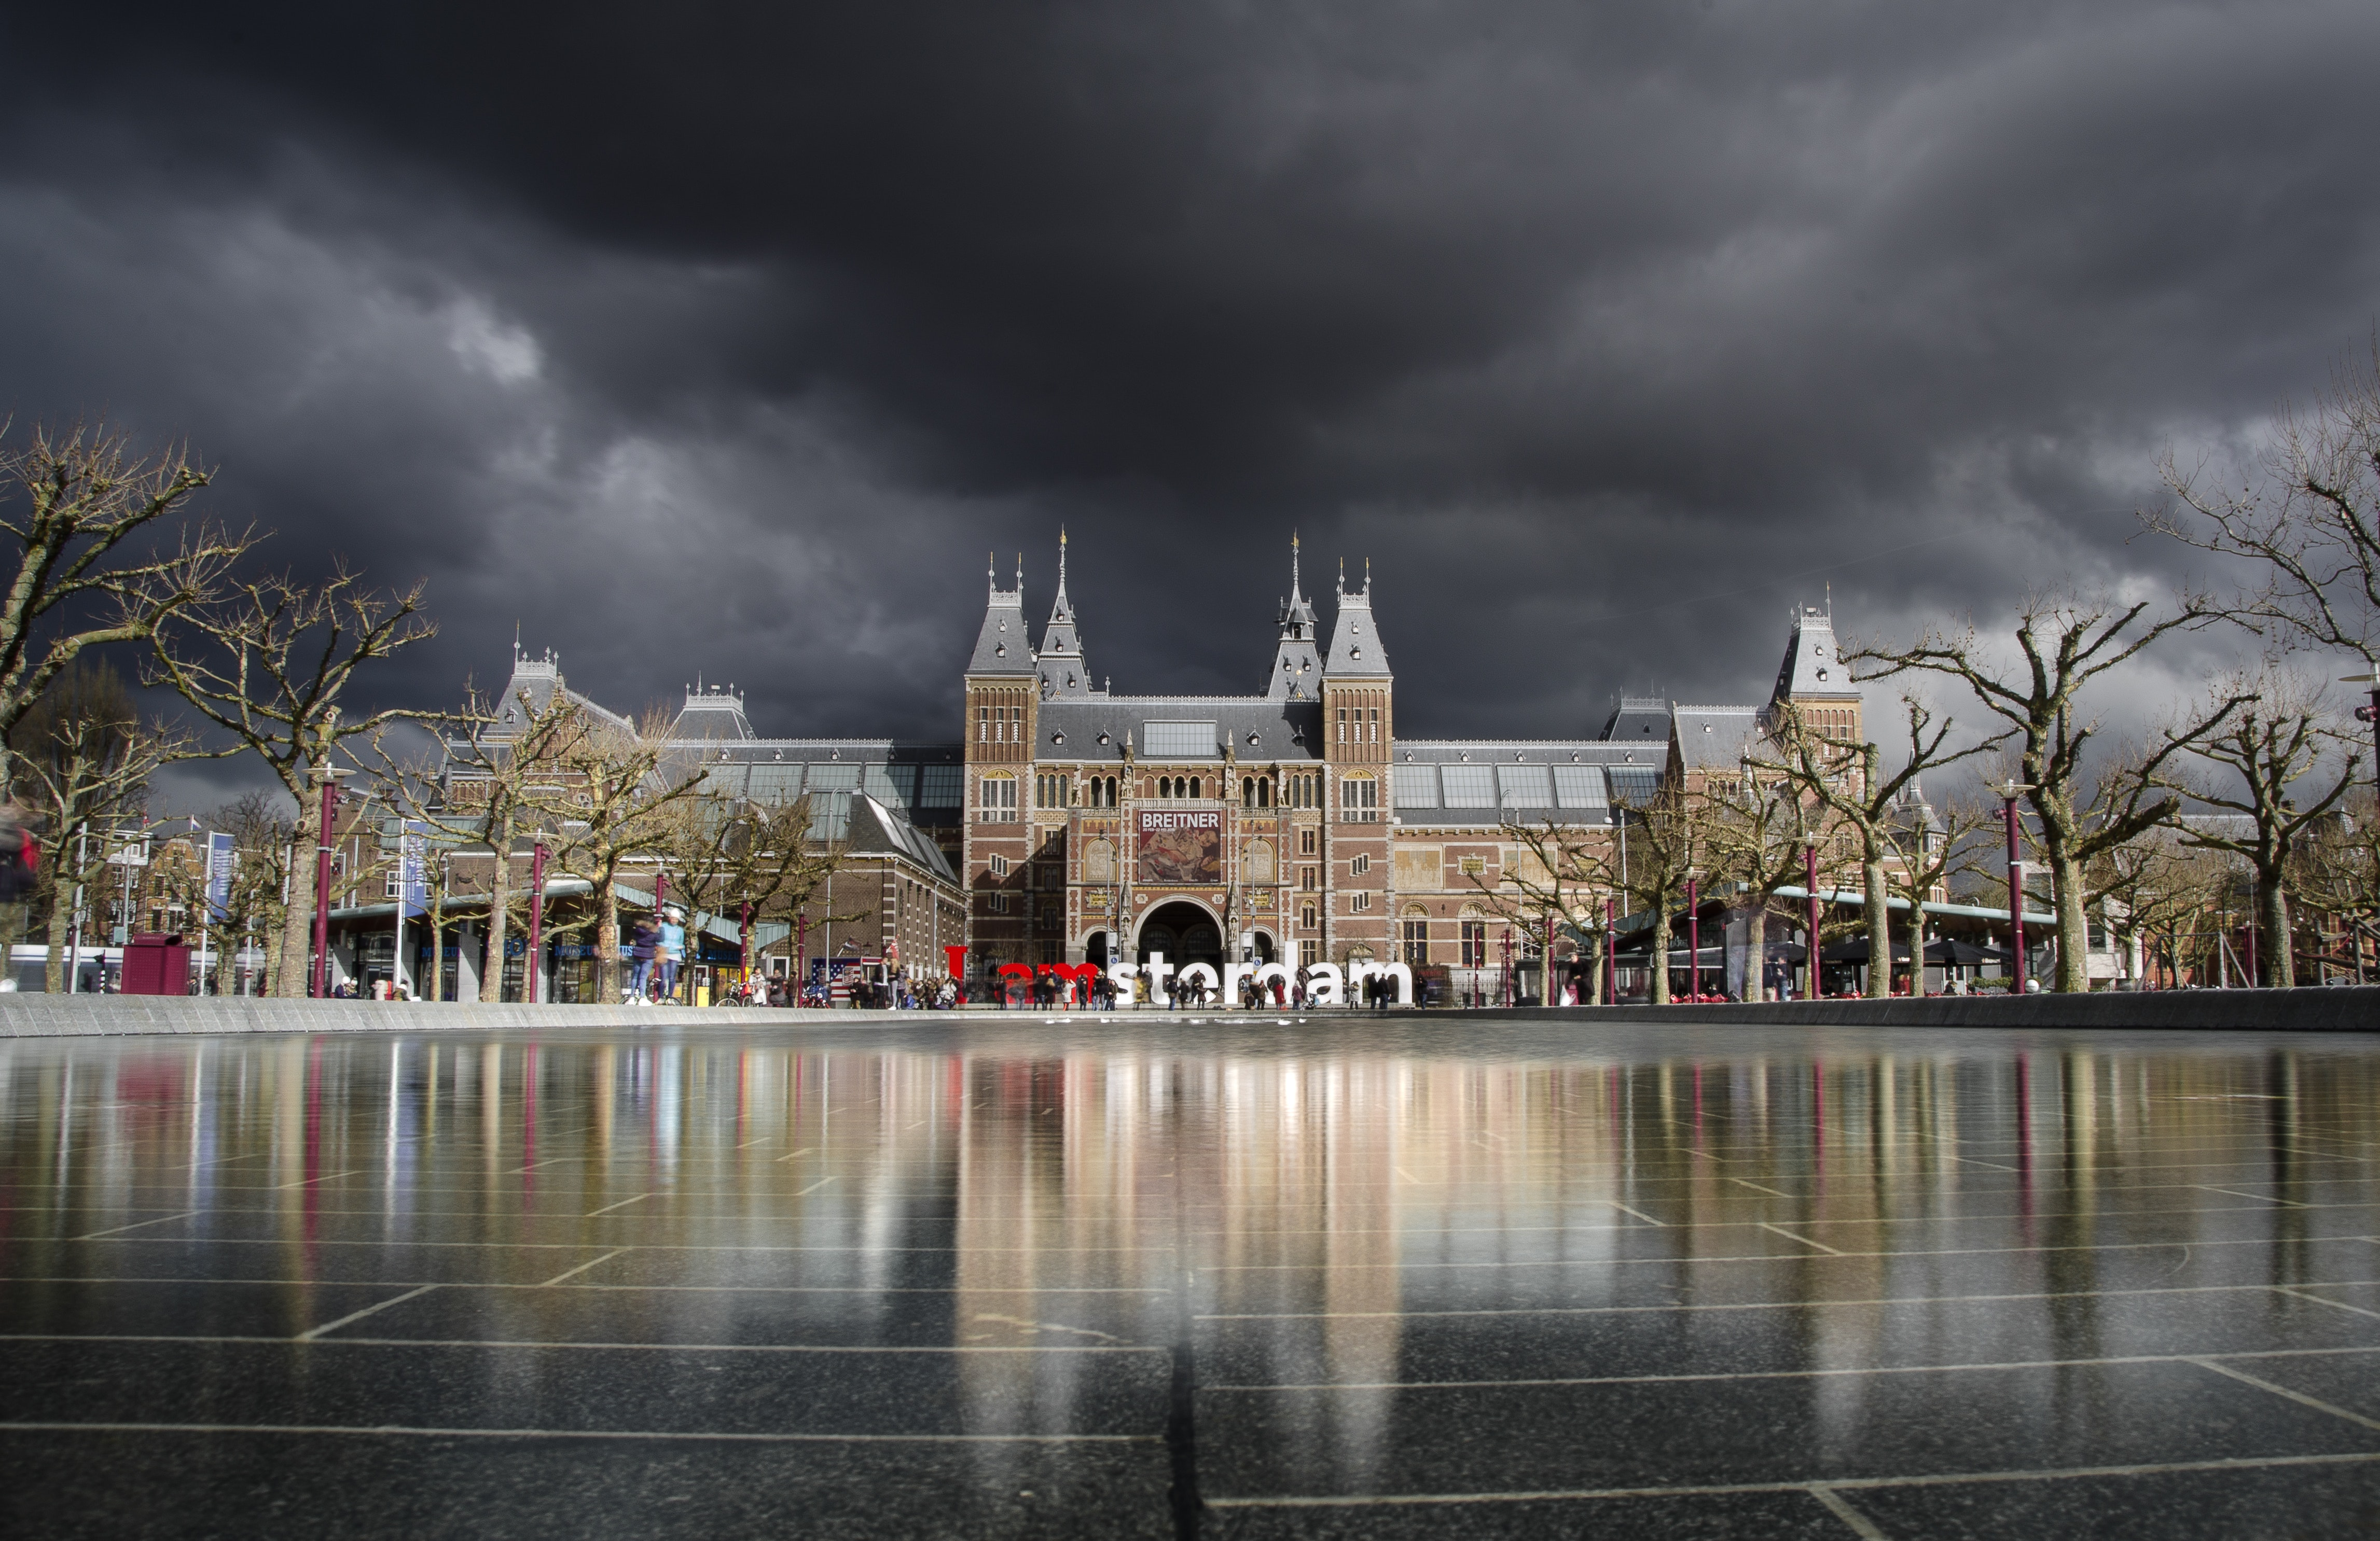 Brown and Grey High Rise Building Beside Leafless Trees during Dark Skies, Amsterdam, Architecture, Building, Dark clouds, HQ Photo